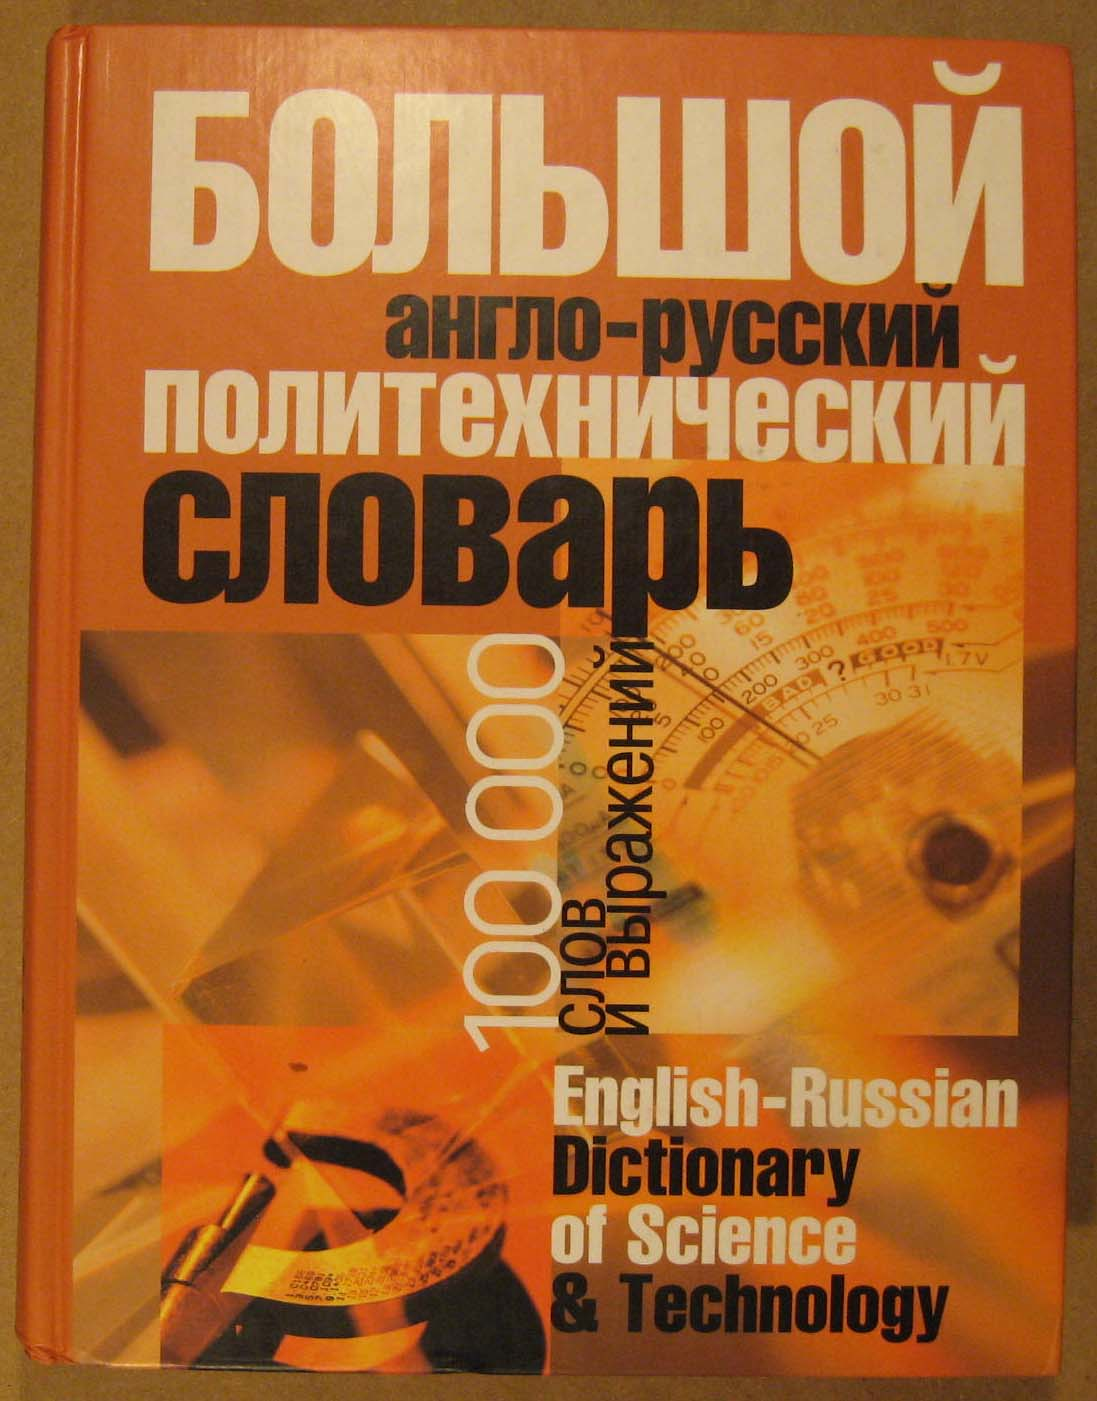 English-Russian Dictionary of Science & Technology / Bolshoi Anglo-Russkii Politekhnicheskii Slovar: 100 000 Slov I Vyrazhenii, Akimov, M. V.